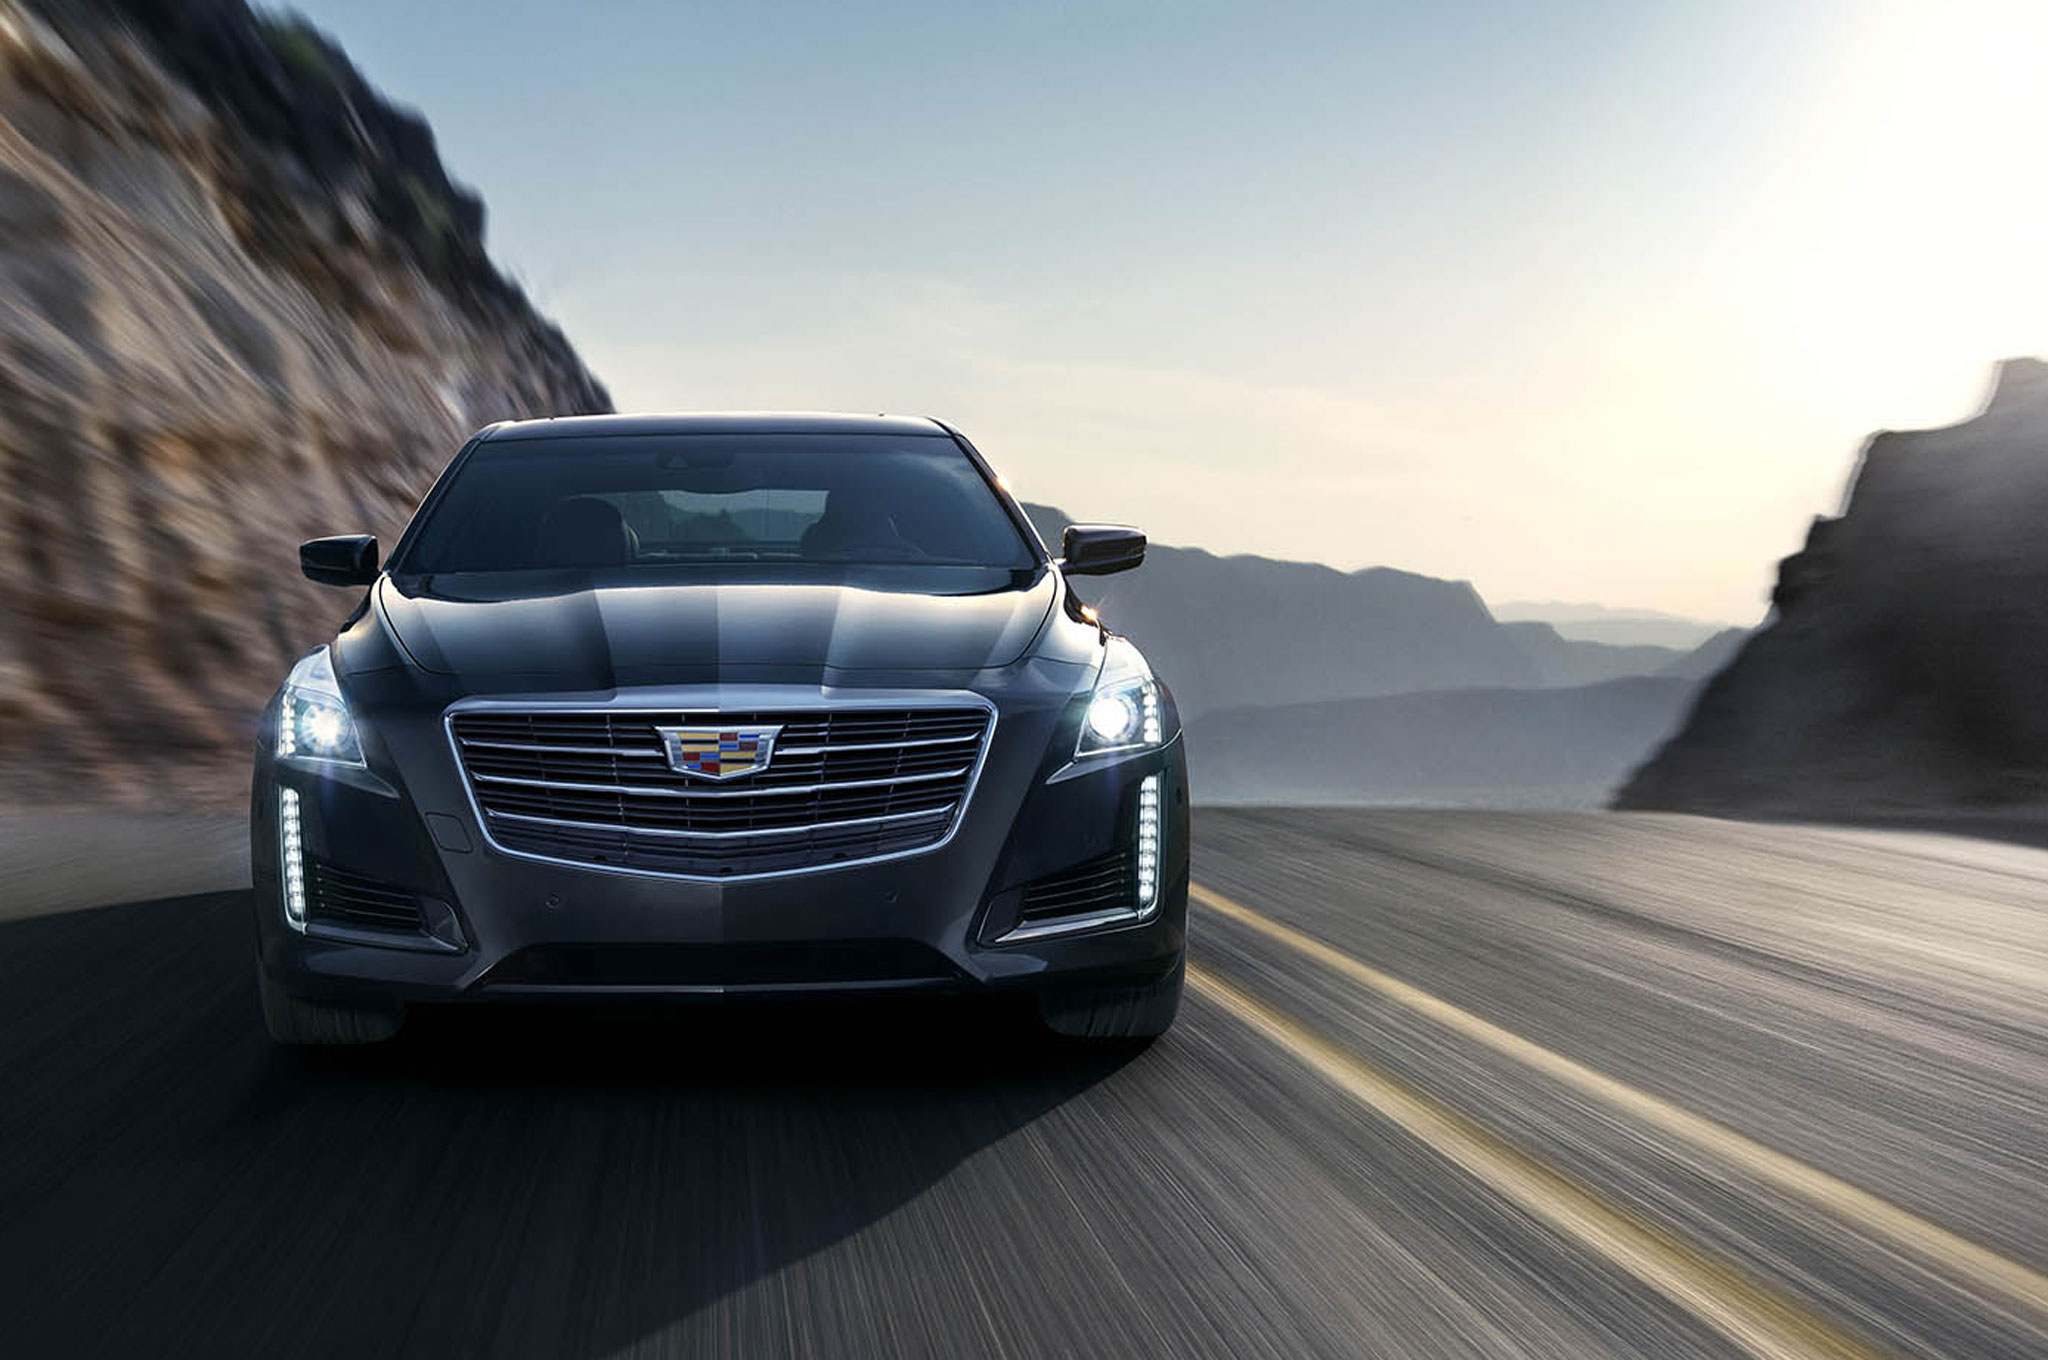 car v cts s review cadillac twin reviews driver sedan photo turbo test and vsport original